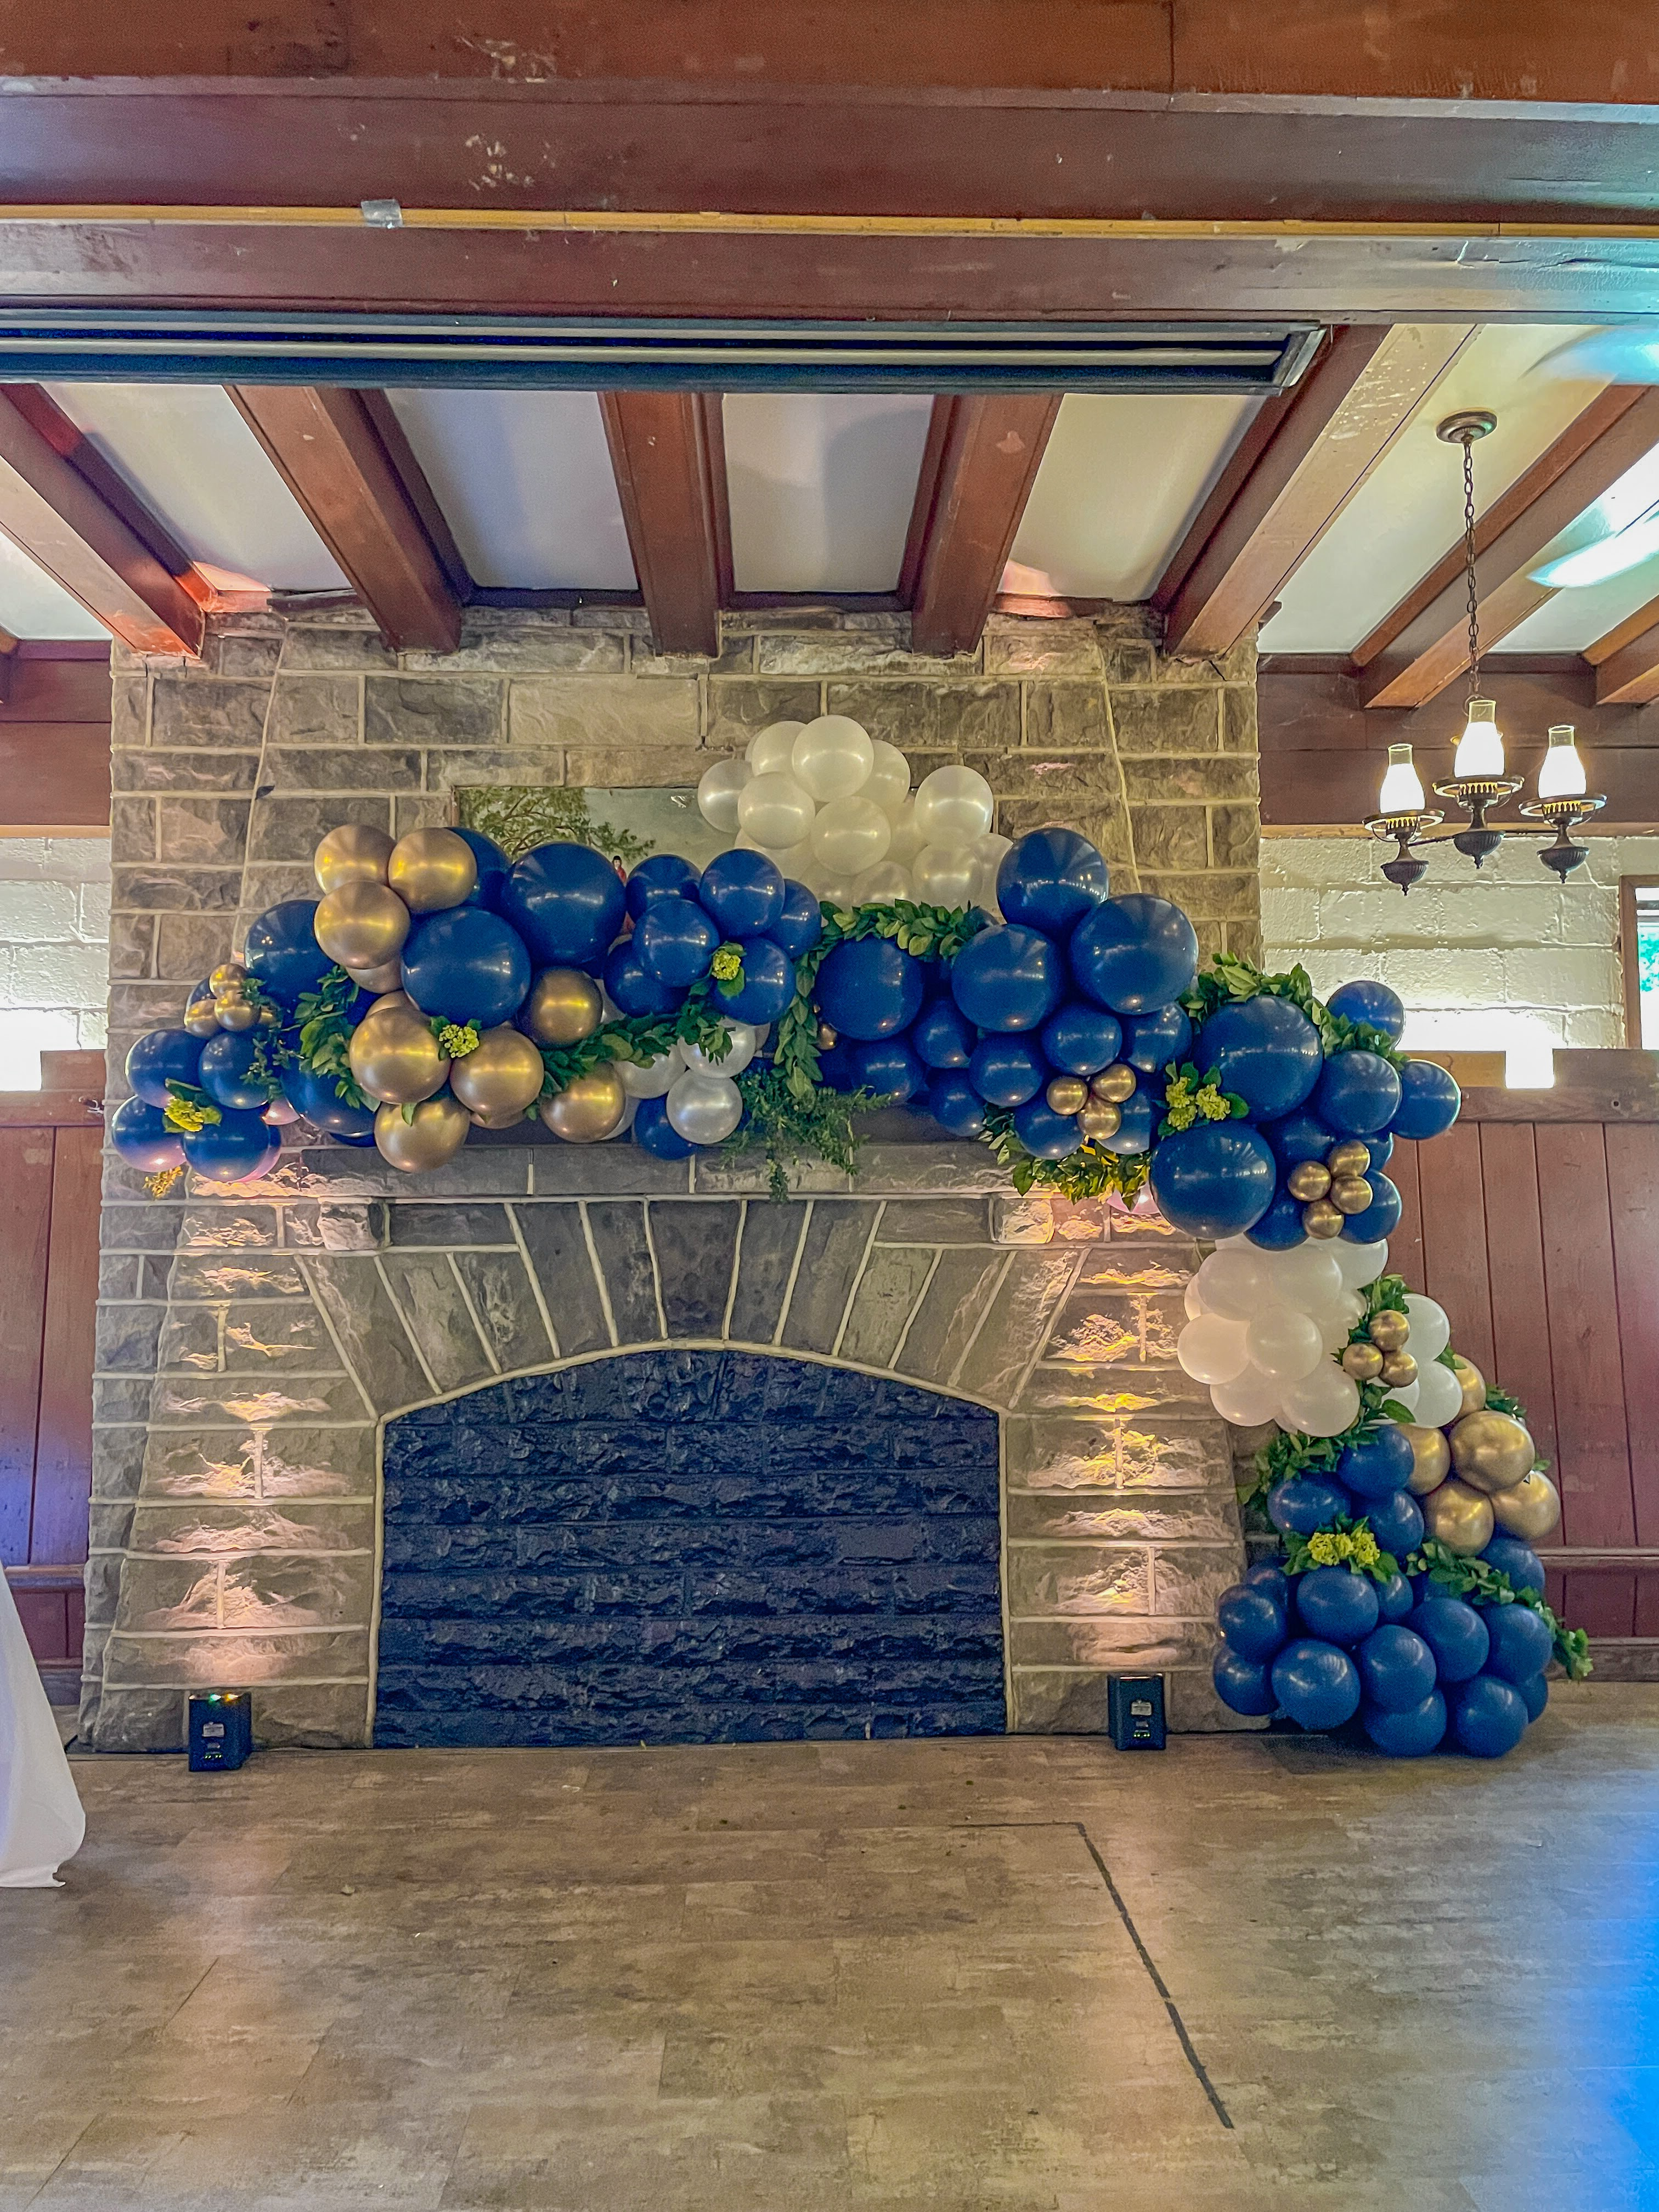 A blue, gold, and white balloon garland against a fireplace.